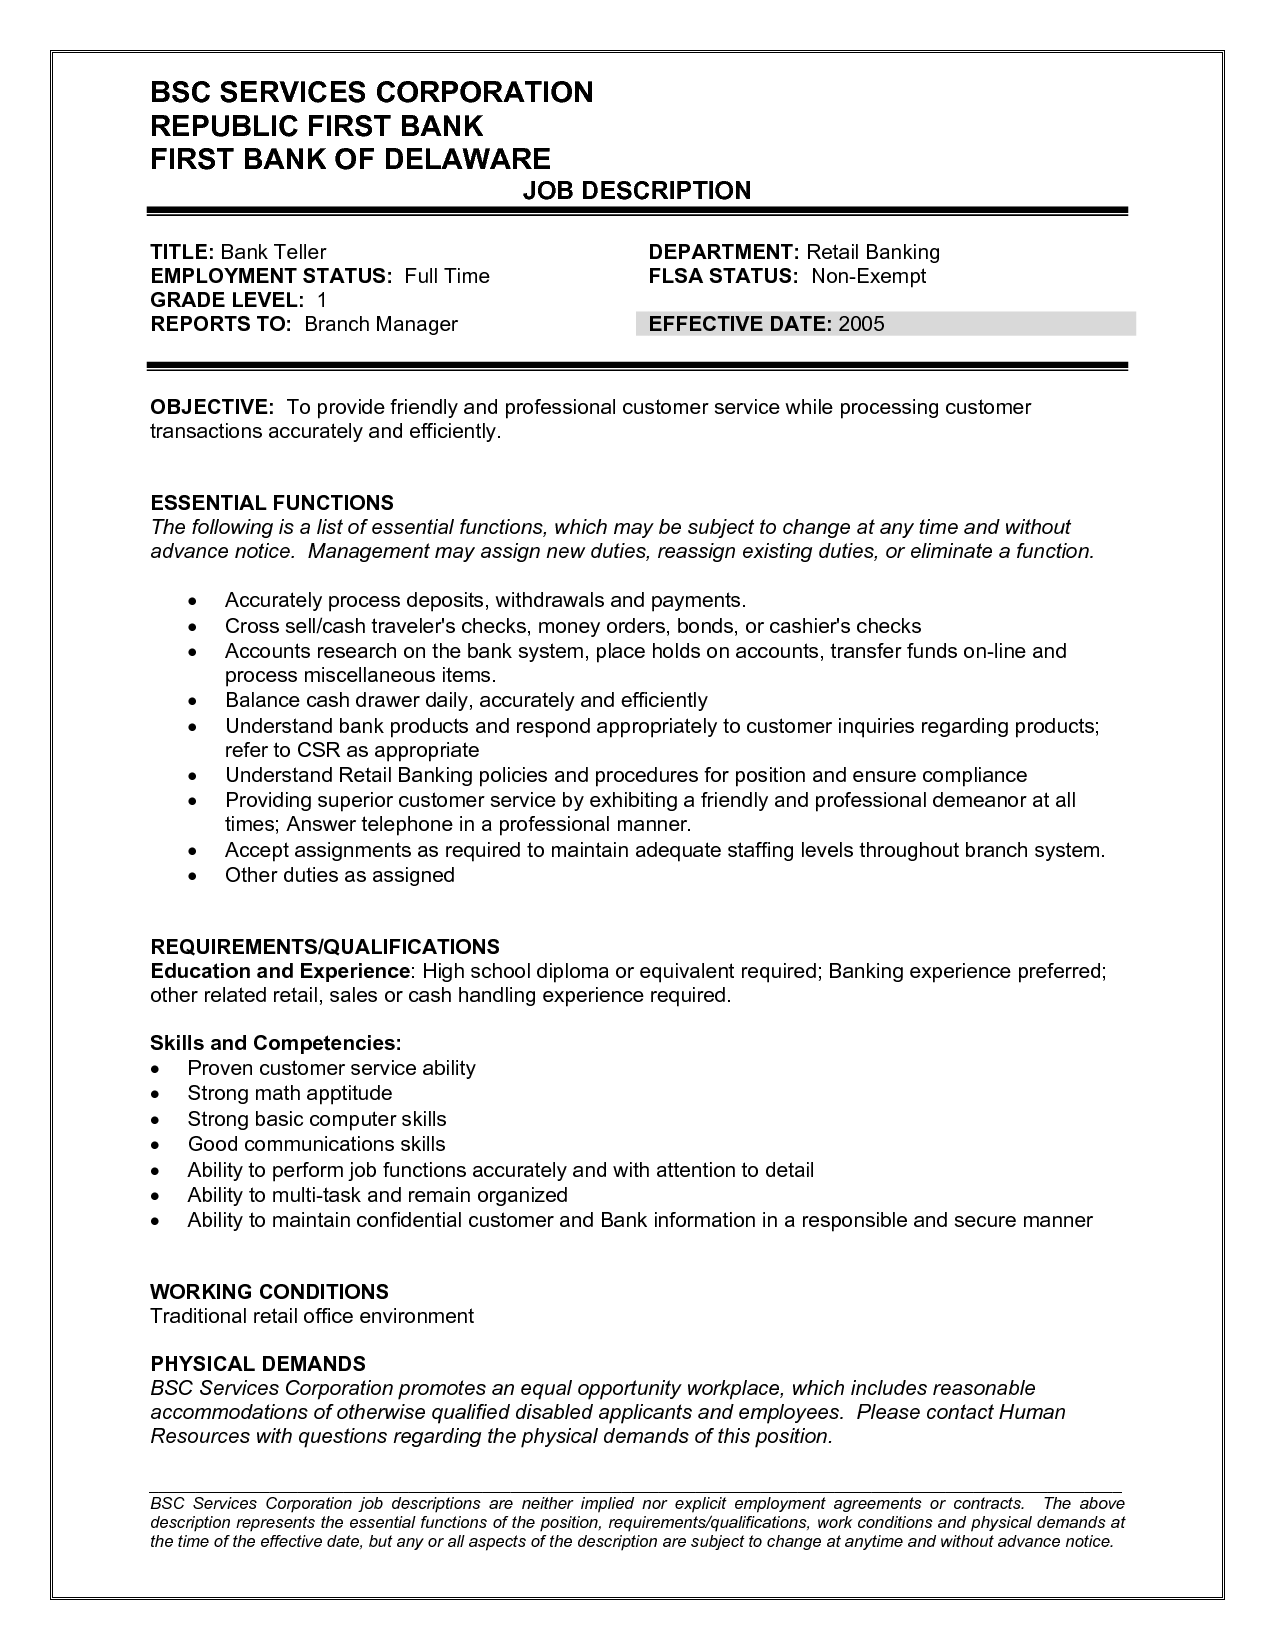 Teller Job Description Resume Bank Teller Job Duties And